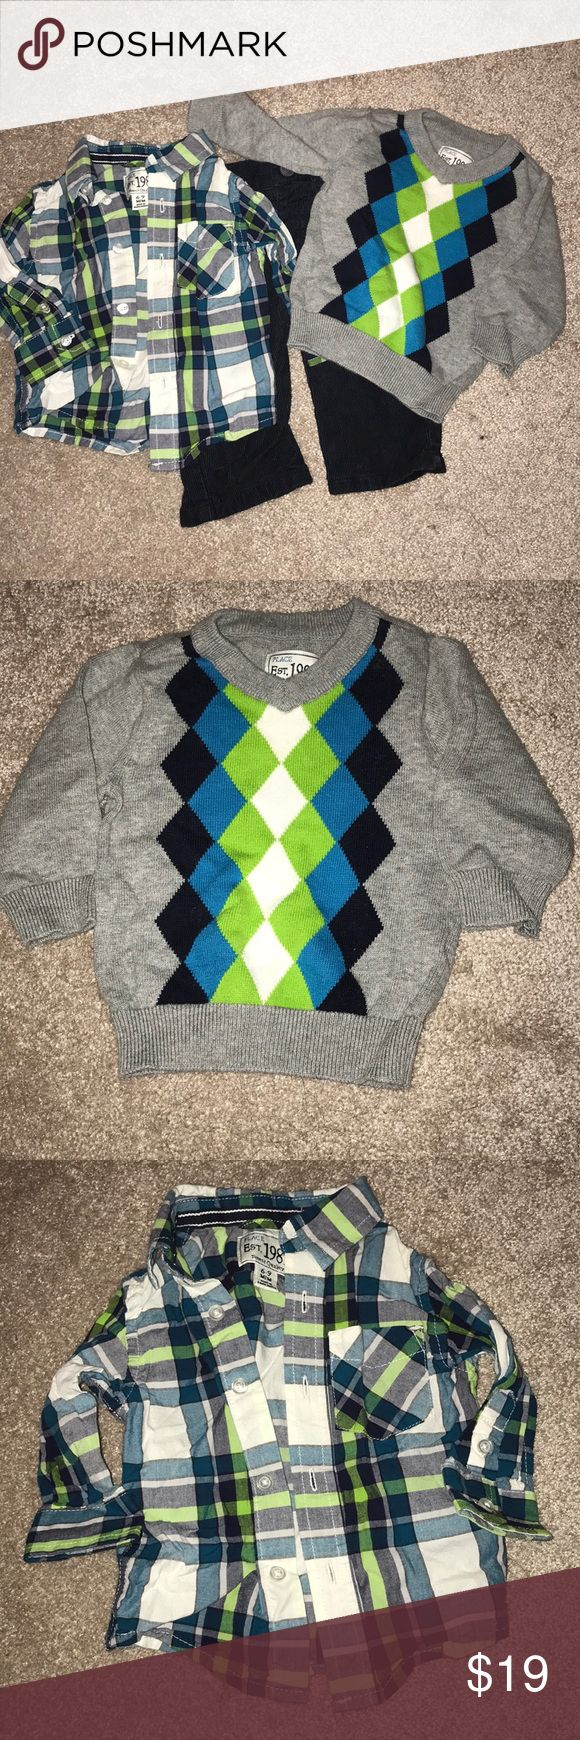 💙💚3 pc Boys outfit💚💙 Perfect outfit for church or a special occasion. Pants are dark blue corduroy. Children's Place Matching Sets